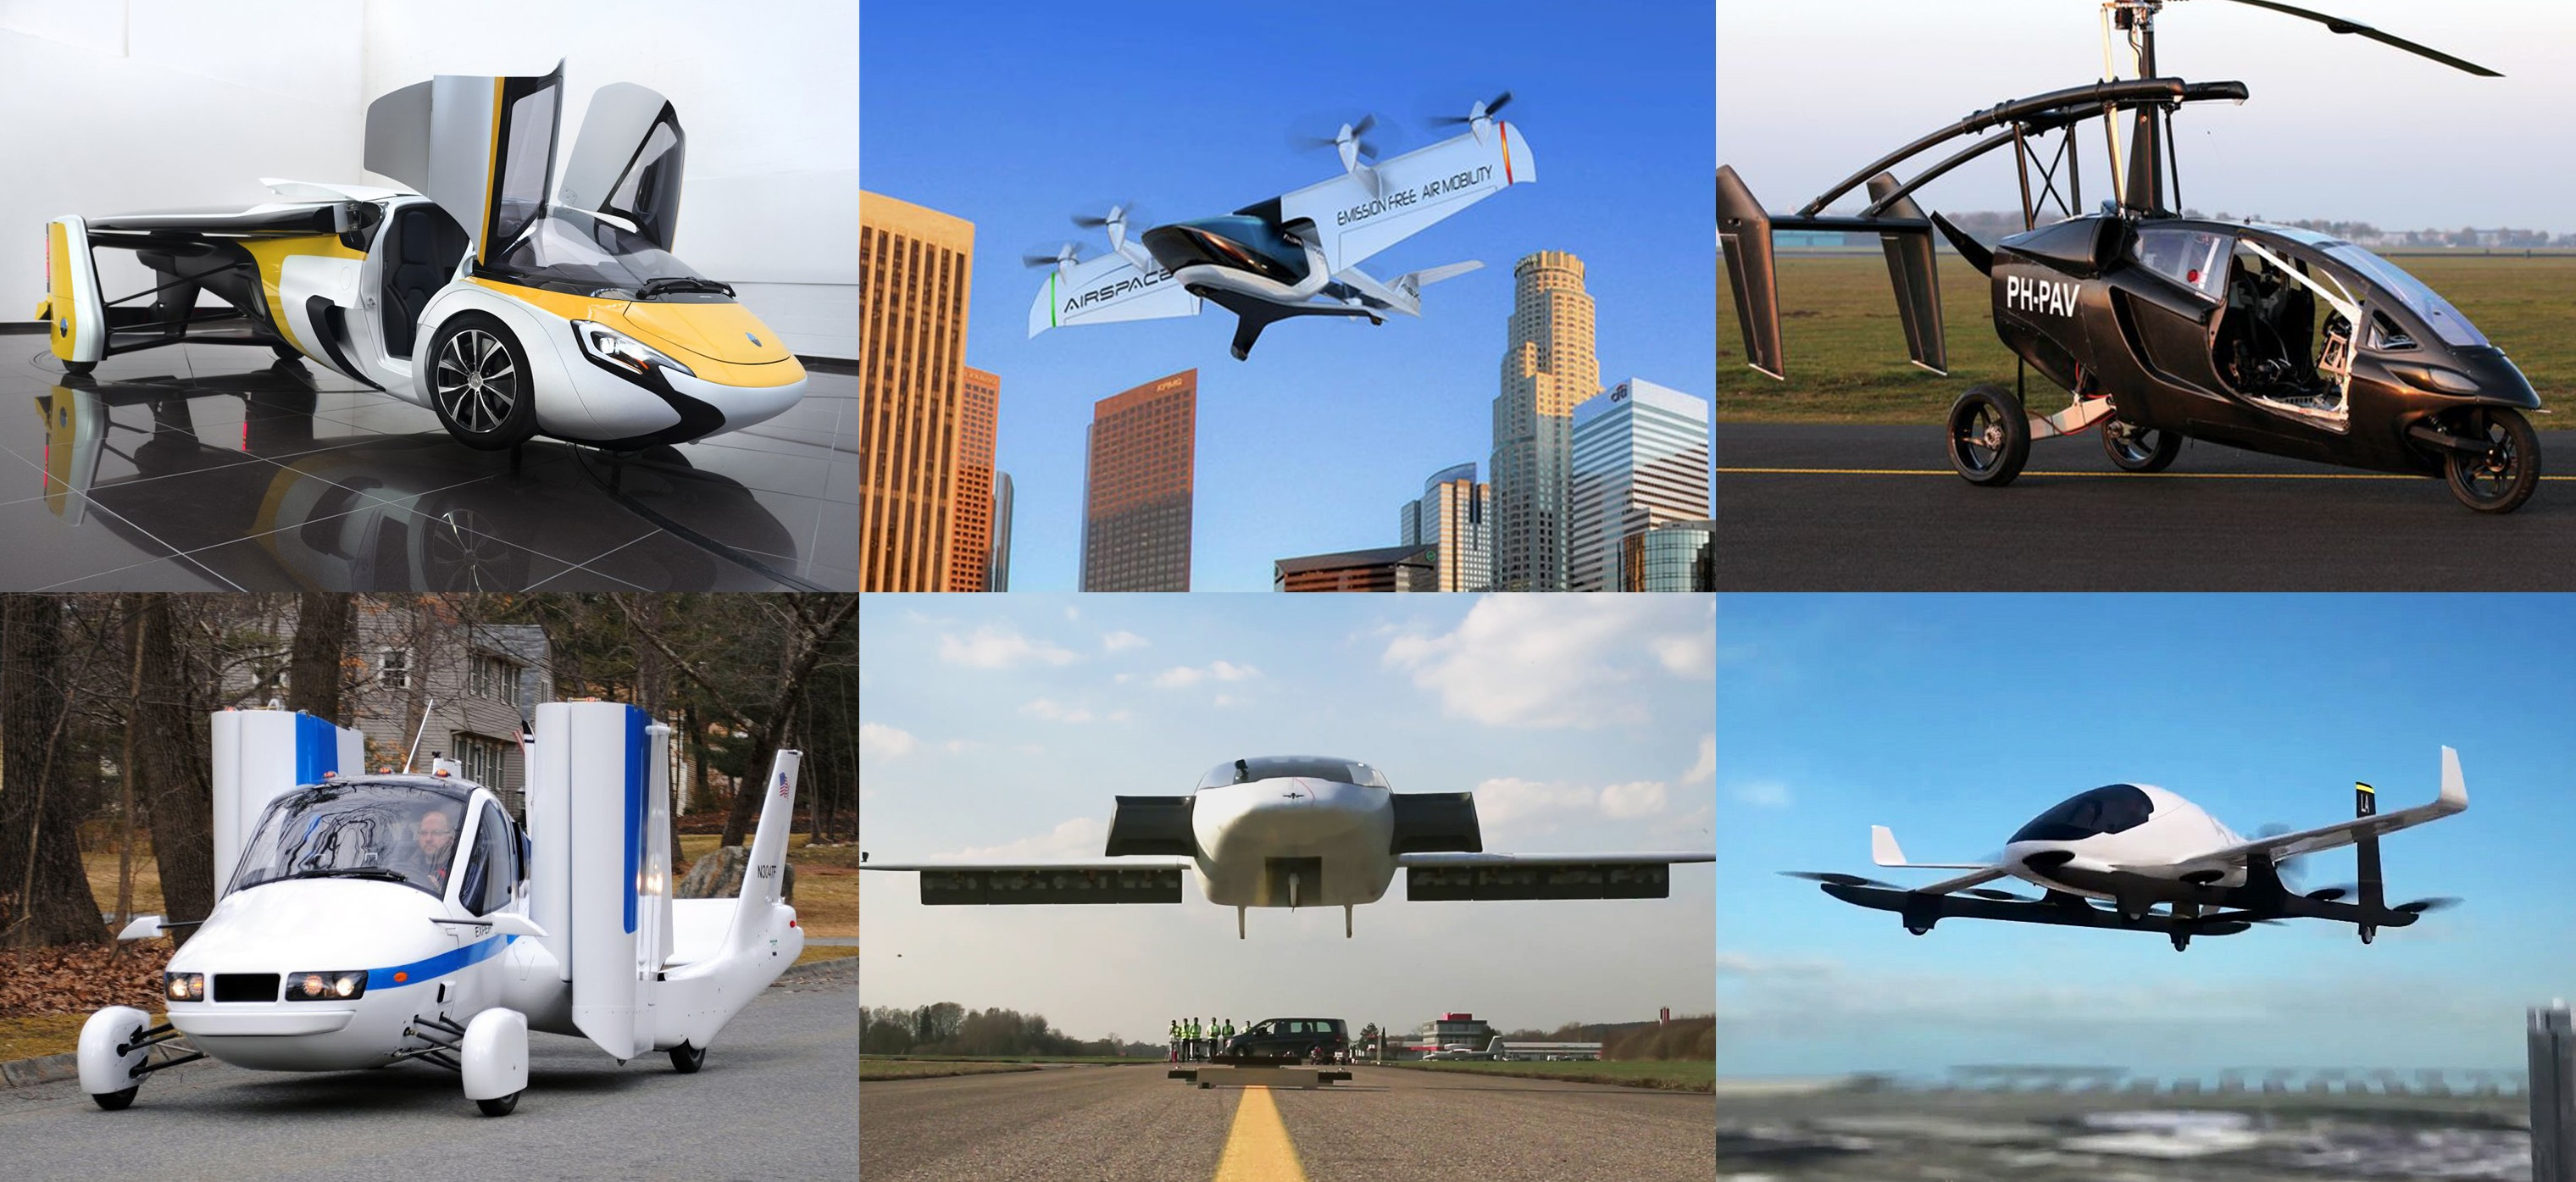 Ending up in Smoke: Projects of Flying Cars Cannot Succeed yet